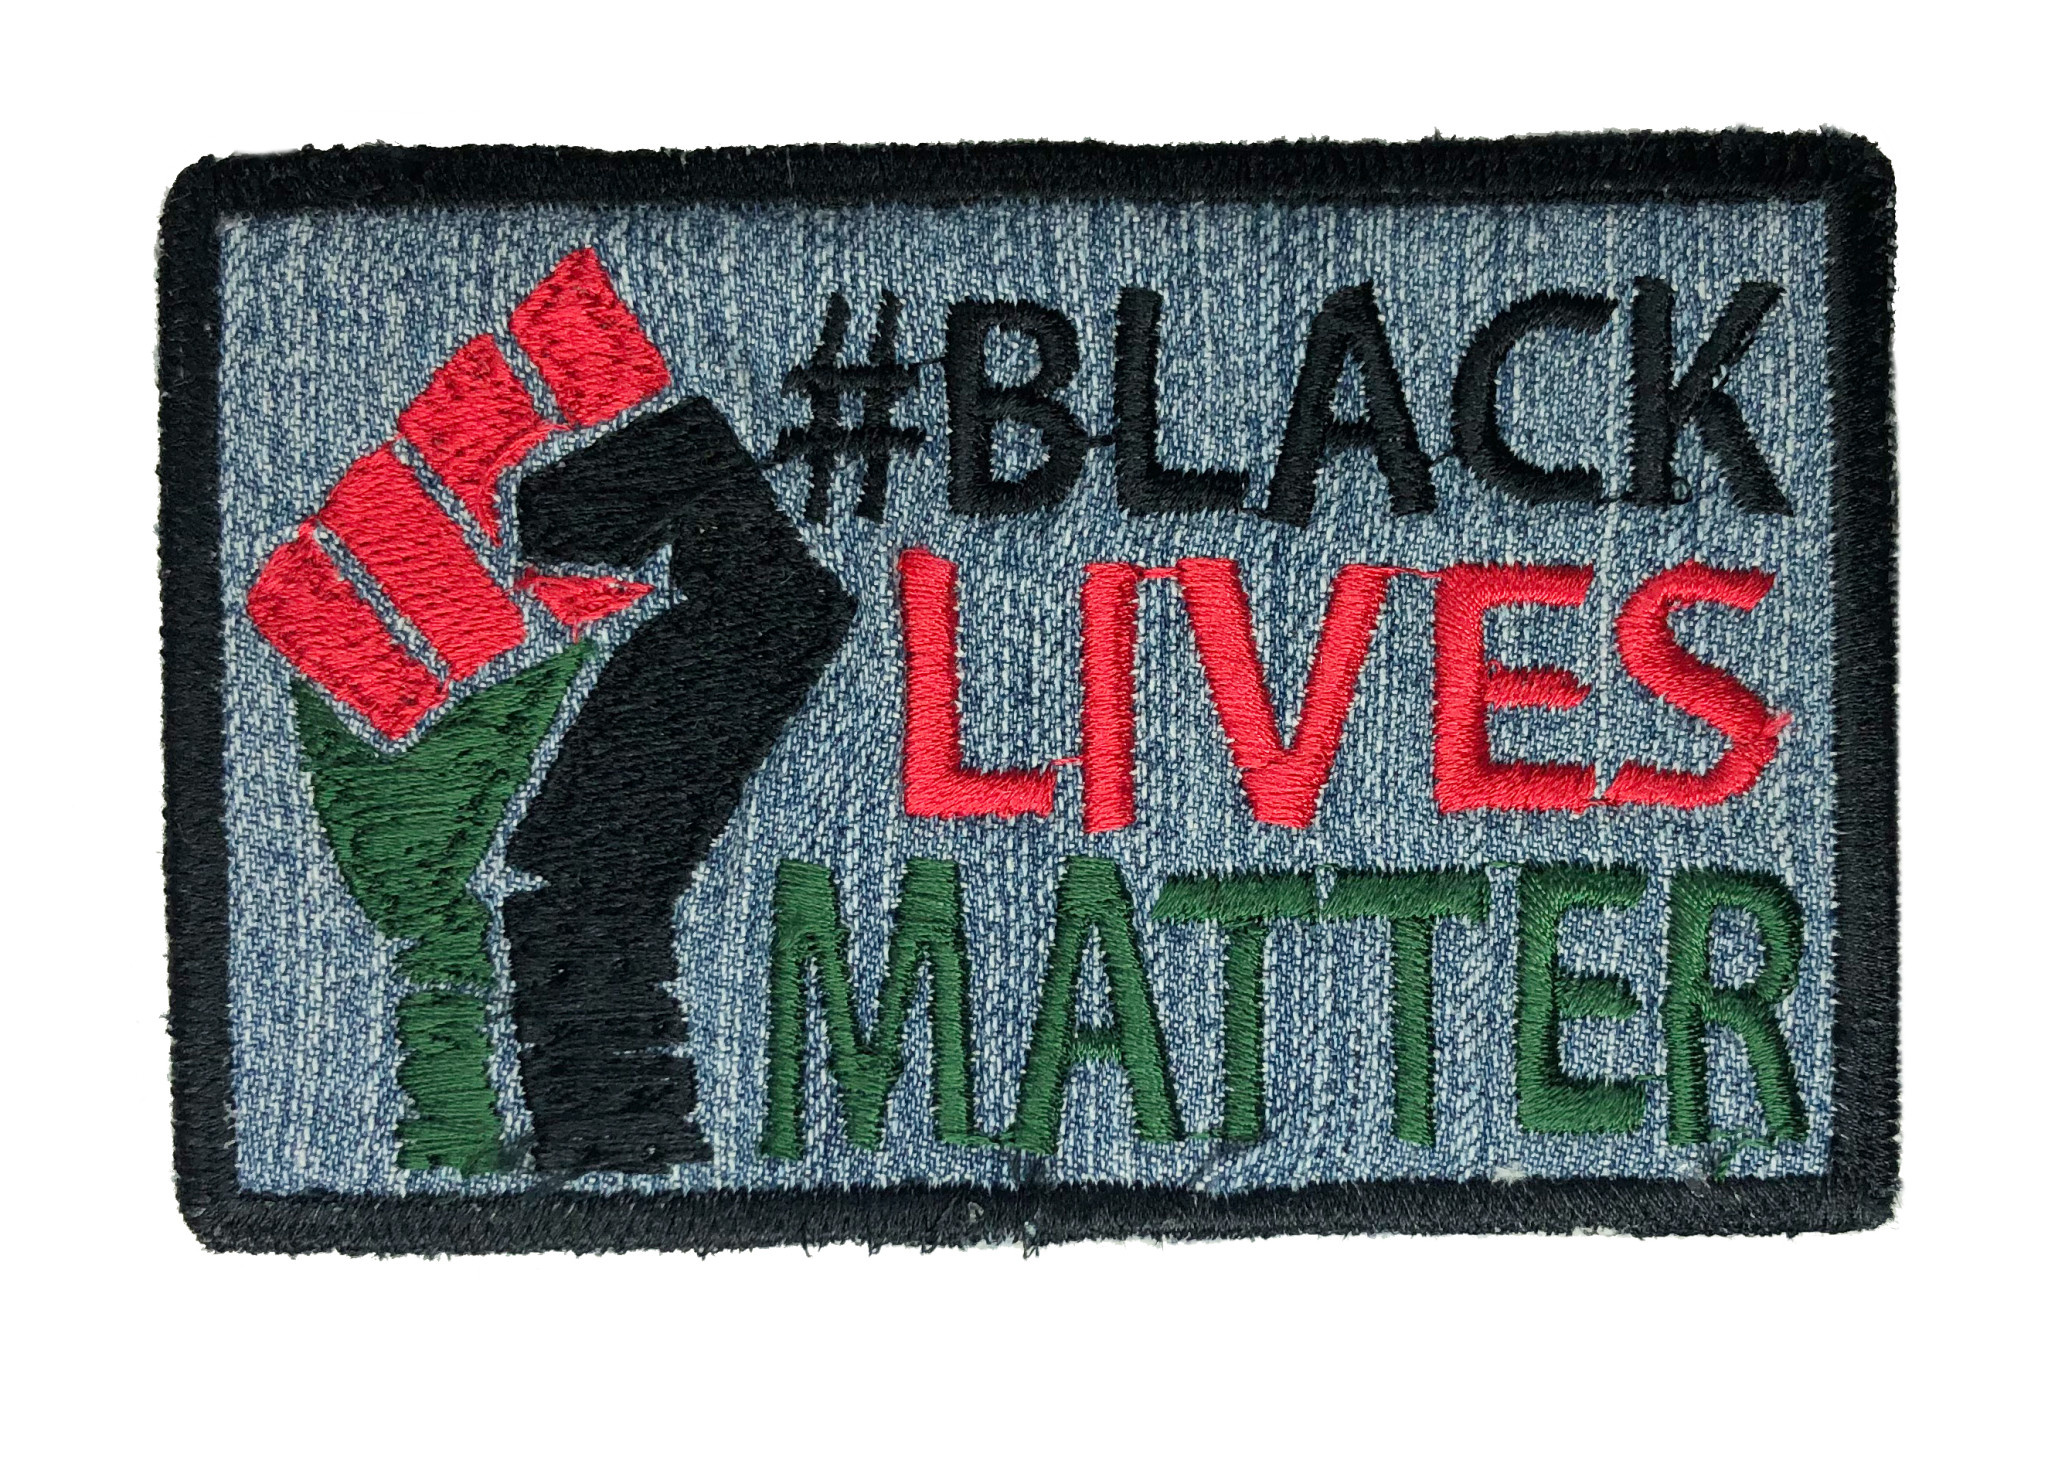 THE SHOP #BLM JEANS LARGE PATCH-1